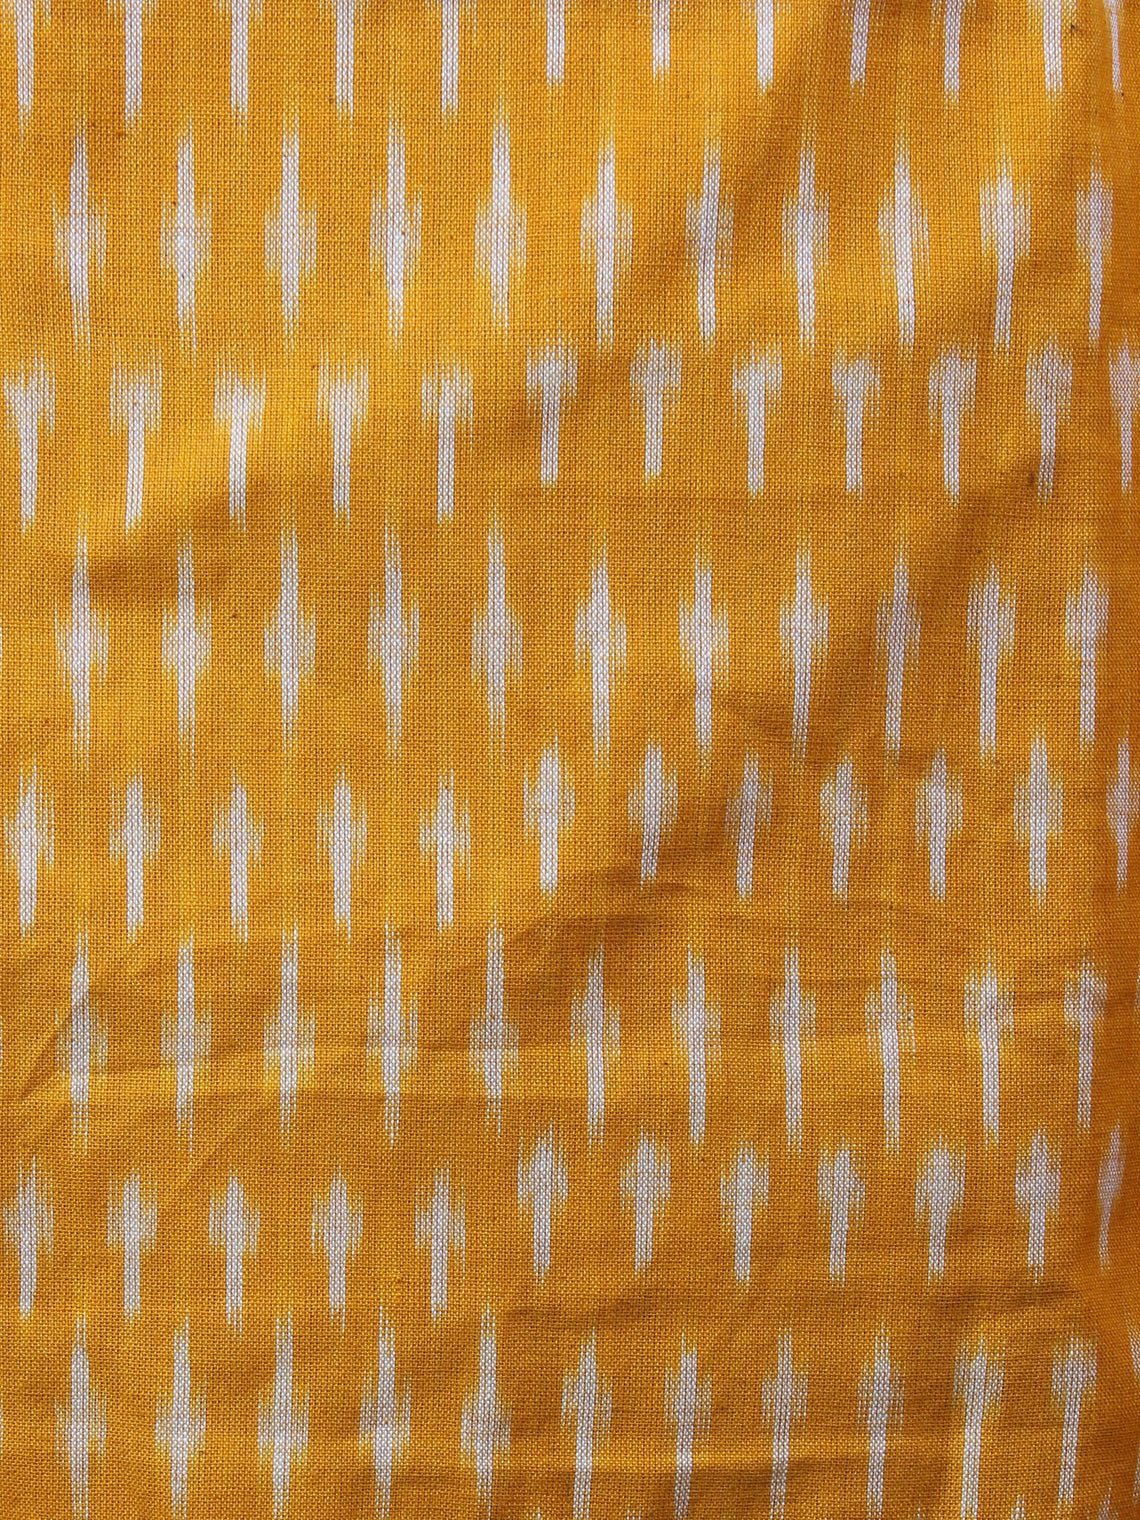 Yellow Black White Ikat Handwoven Cotton Suit Fabric Set of 3 - S1002011